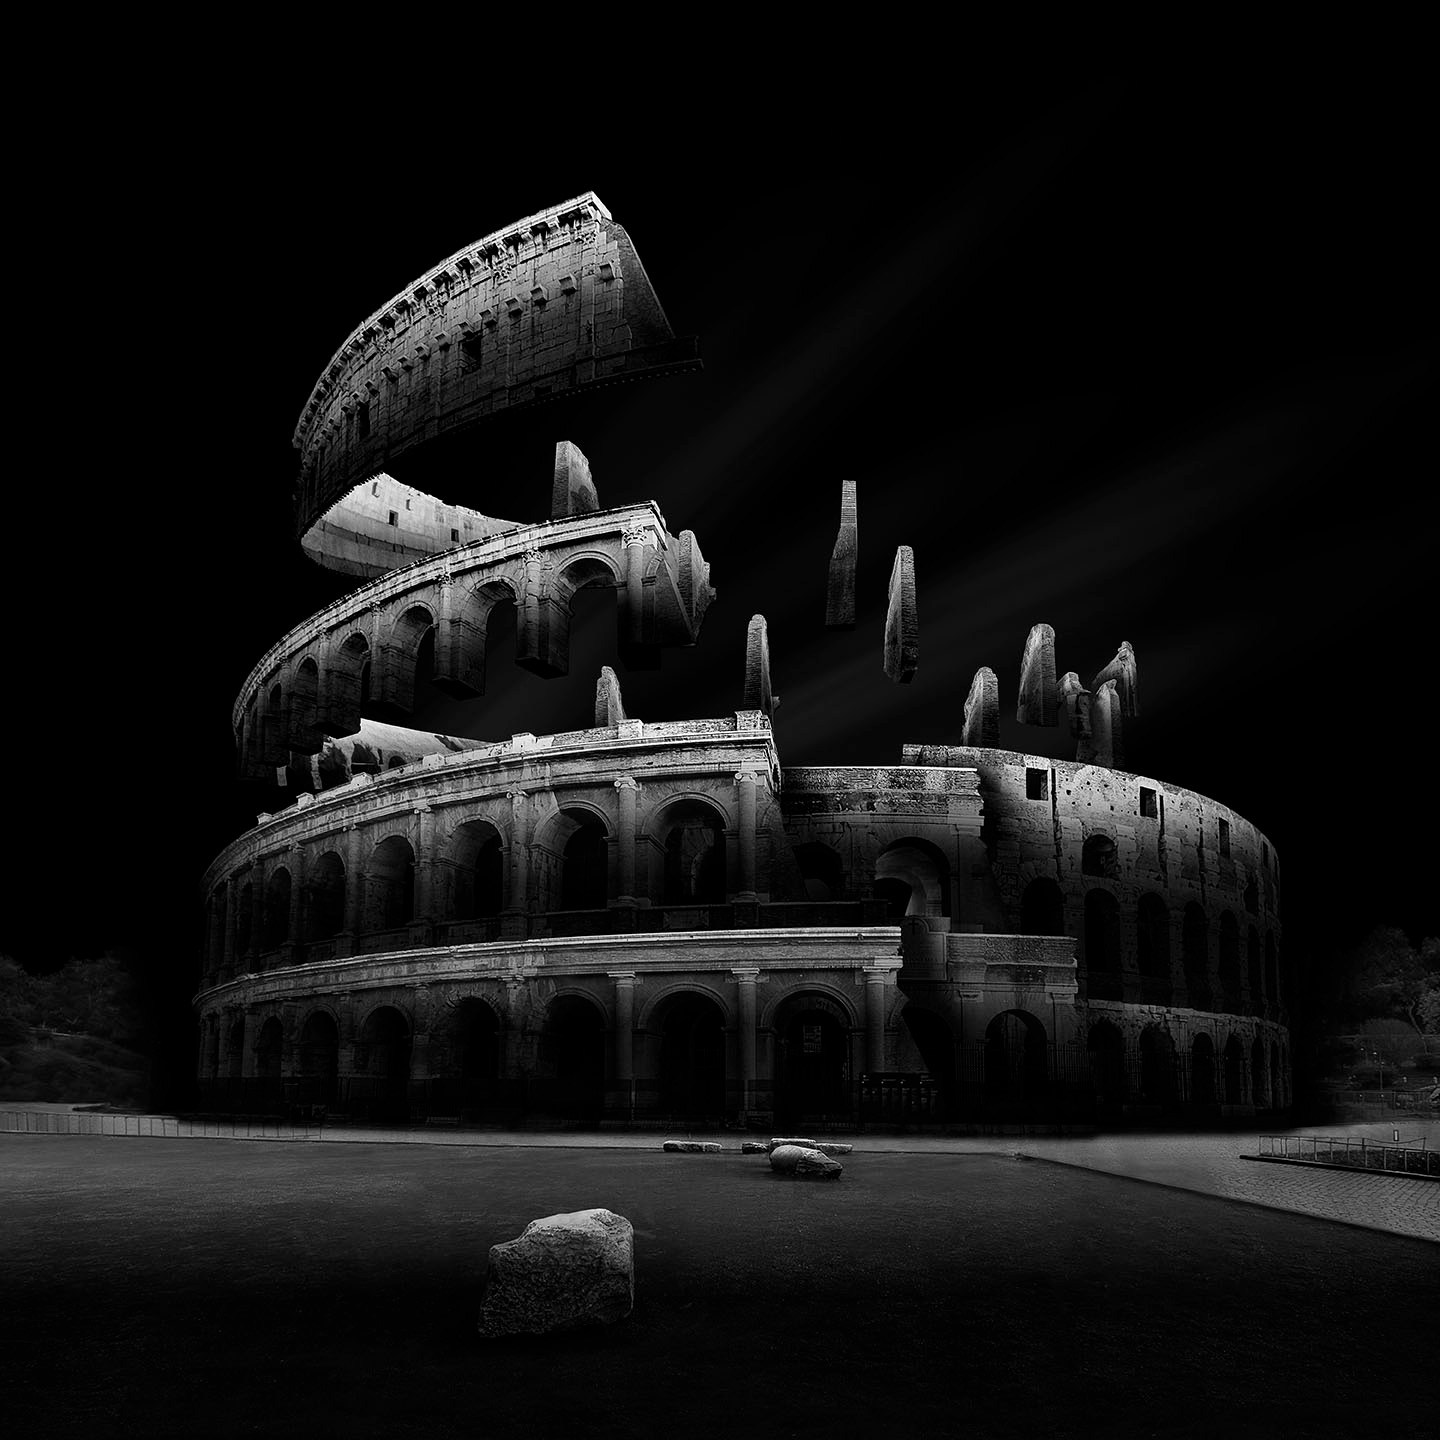 daniel-garay-arango-black-white-deconstructed-monuments